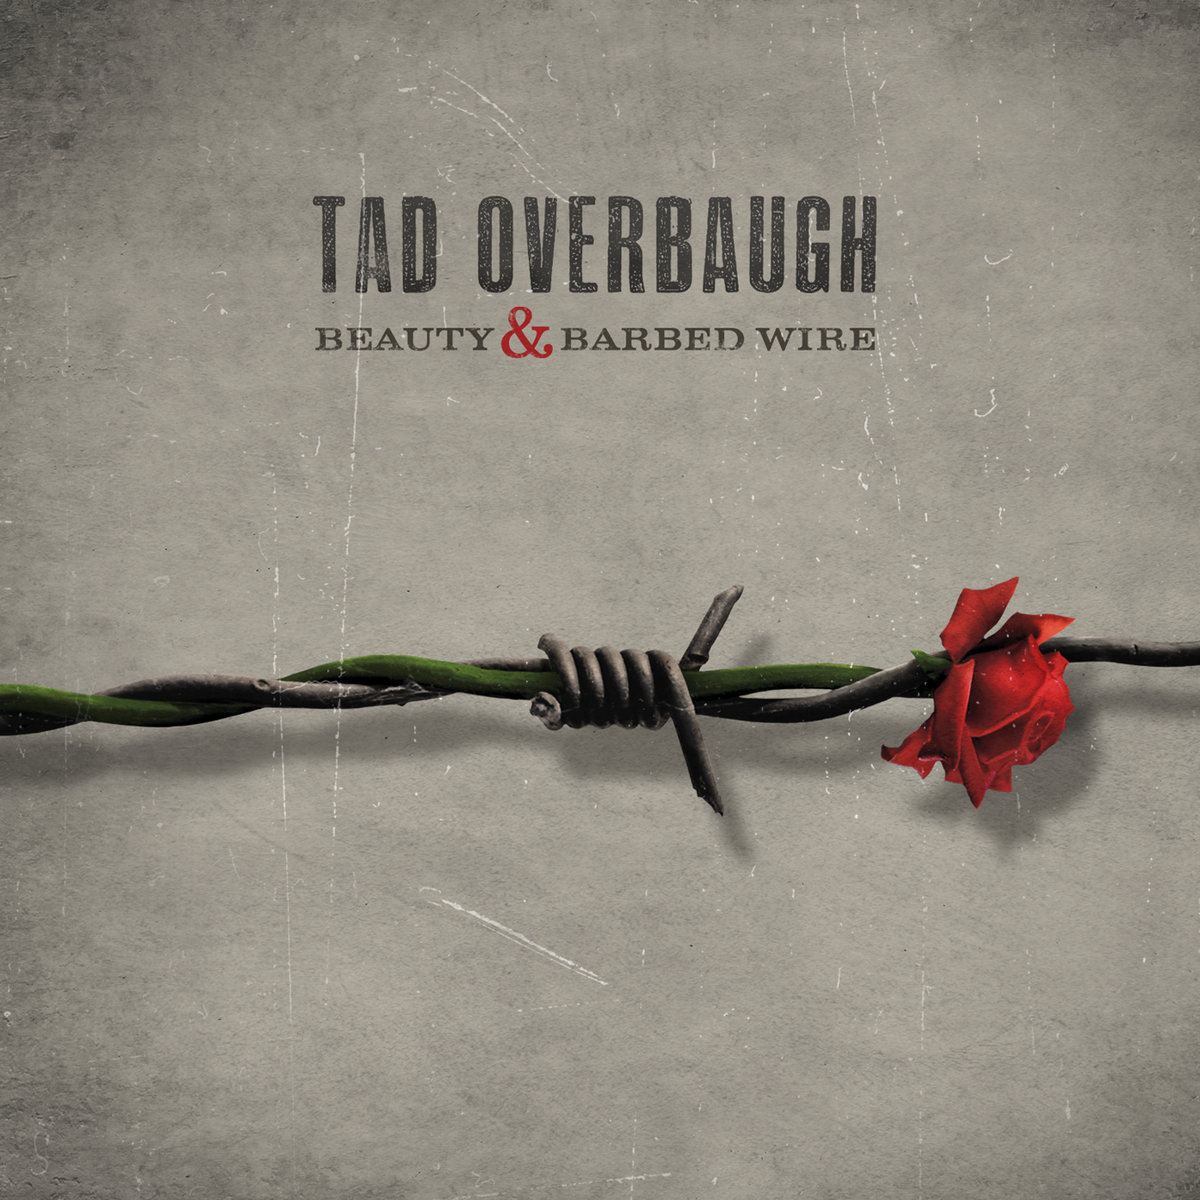 Beauty & Barbed Wire | Tad Overbaugh